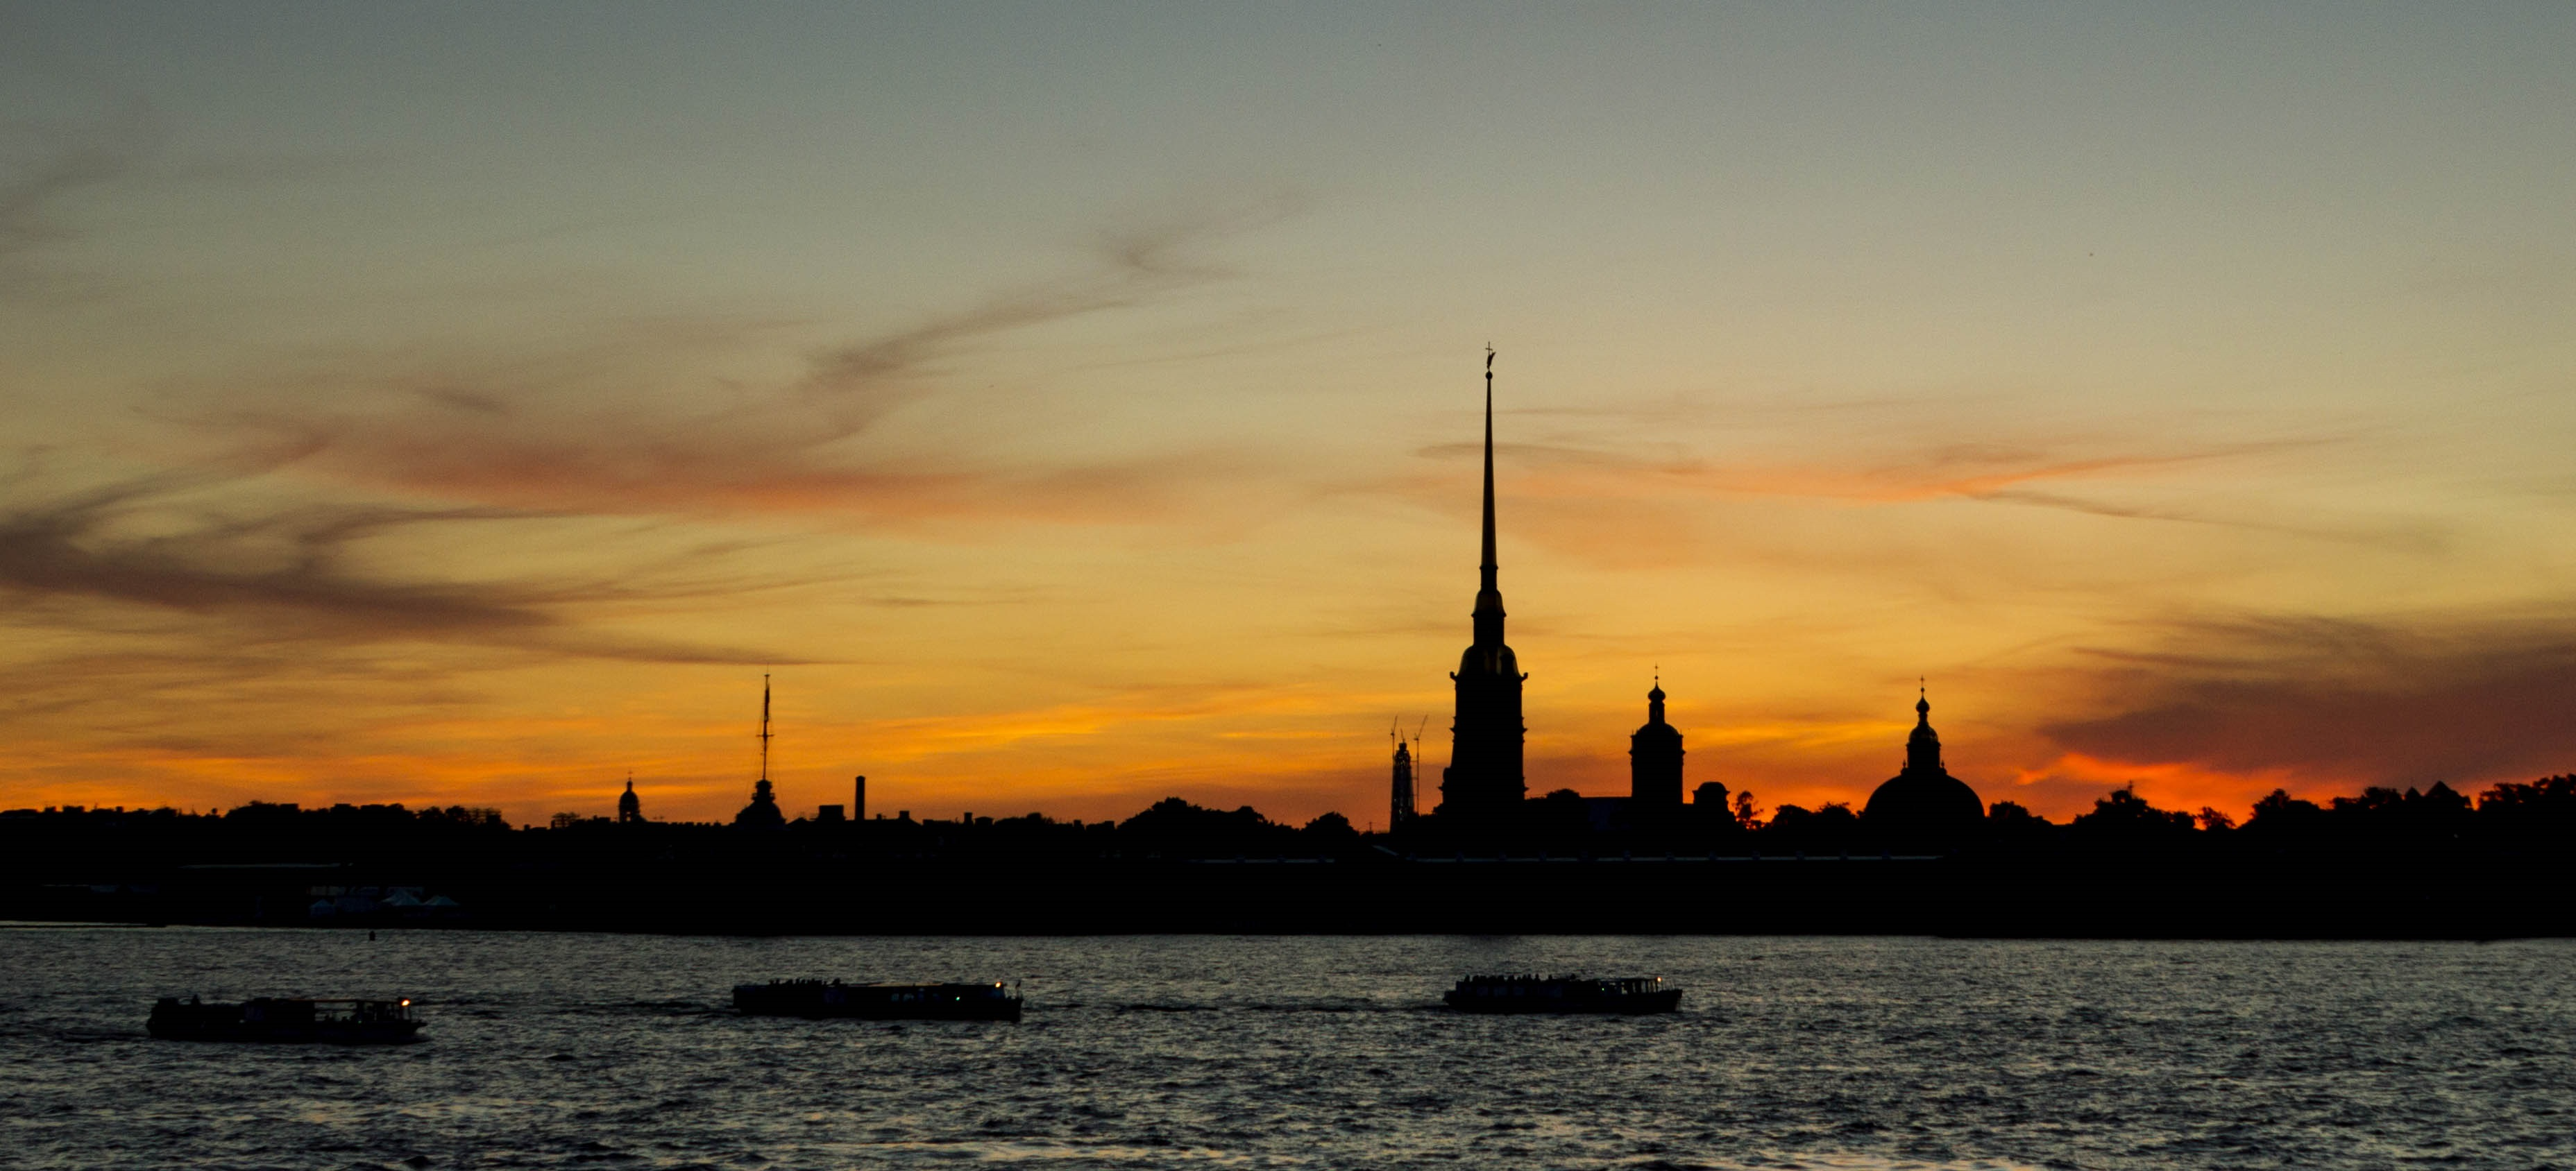 How to organize a trip to Saint Petersburg, Russia? Practical tips and information (Updated 2020)